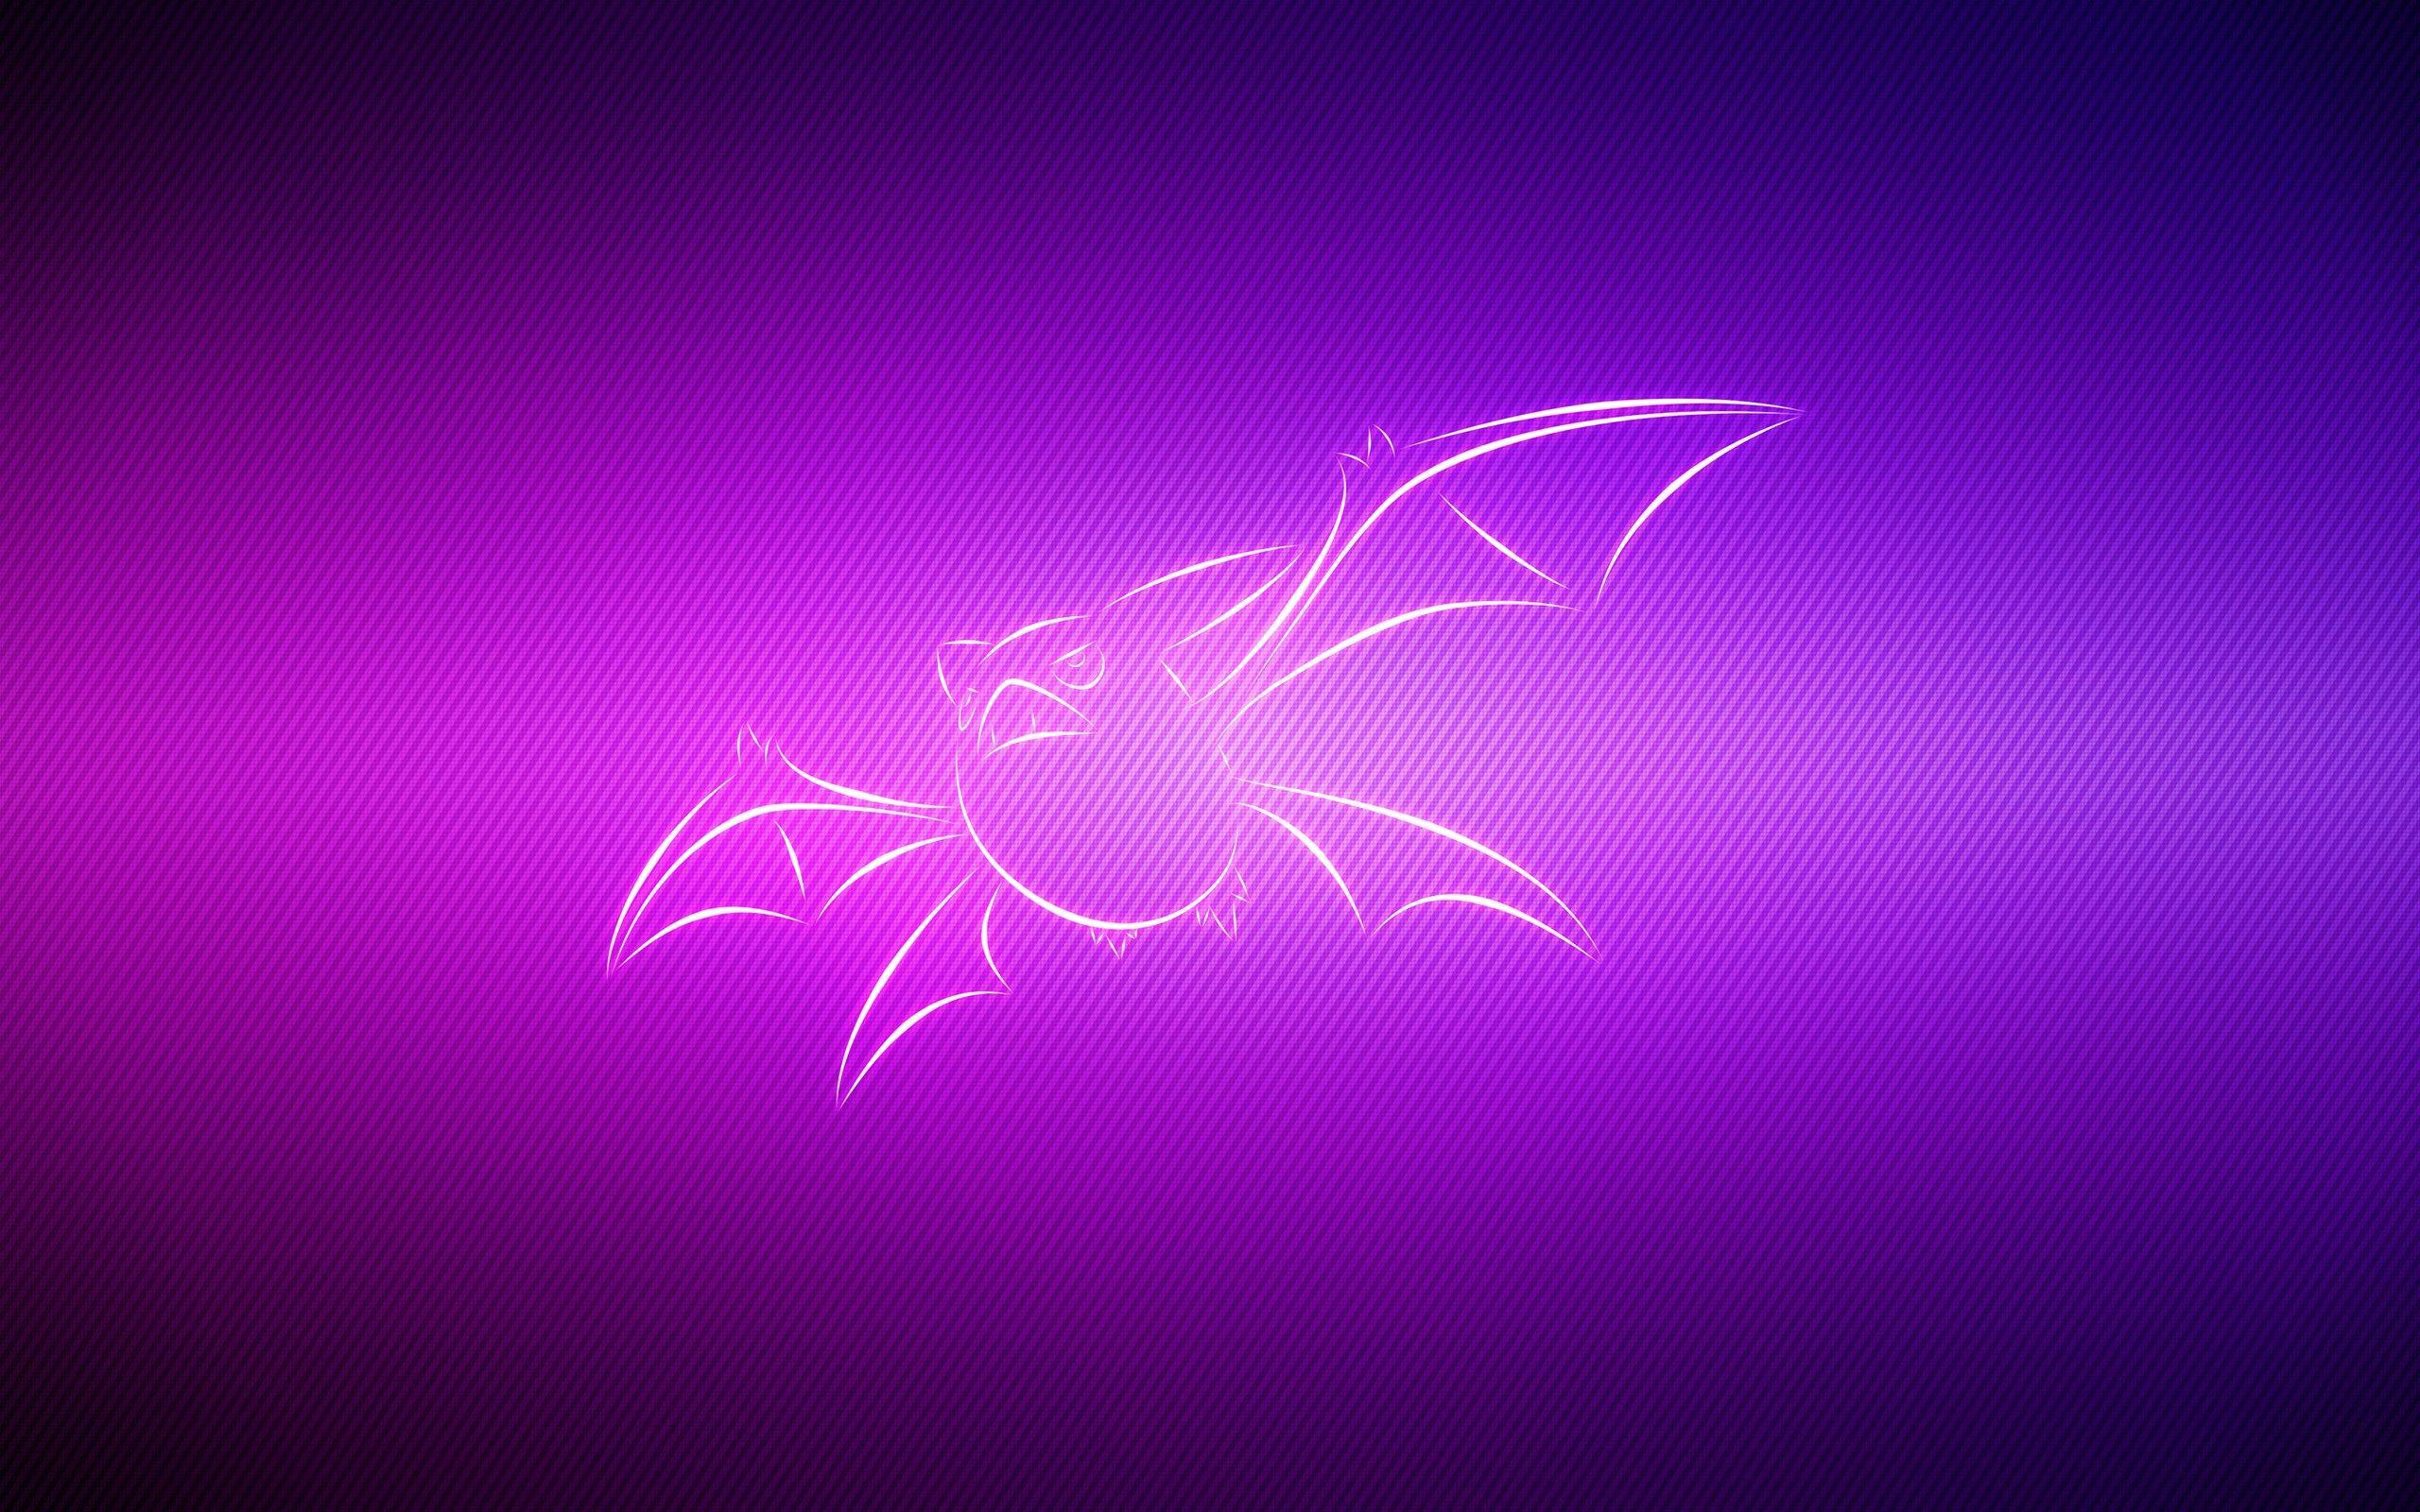 crobat wallpaper | ololoshka | Pinterest | Wallpaper